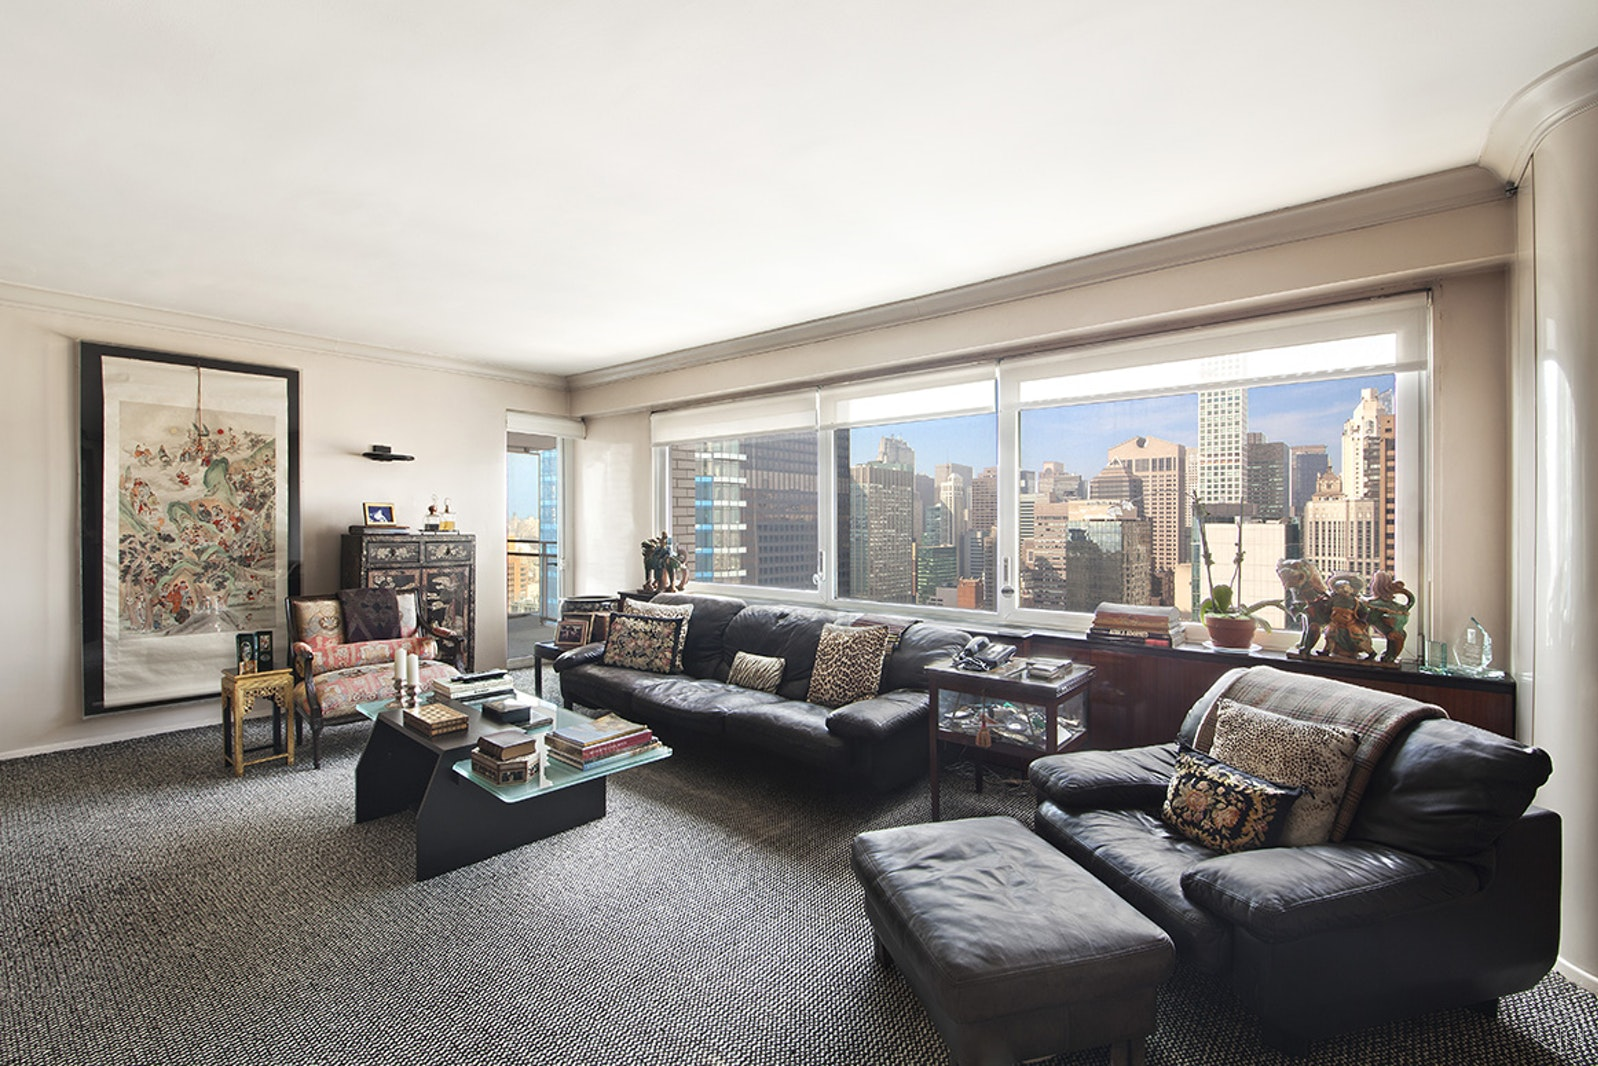 303 East 57th Street 39de, Midtown East, NYC, 10022, $1,800,000, Property For Sale, Halstead Real Estate, Photo 2